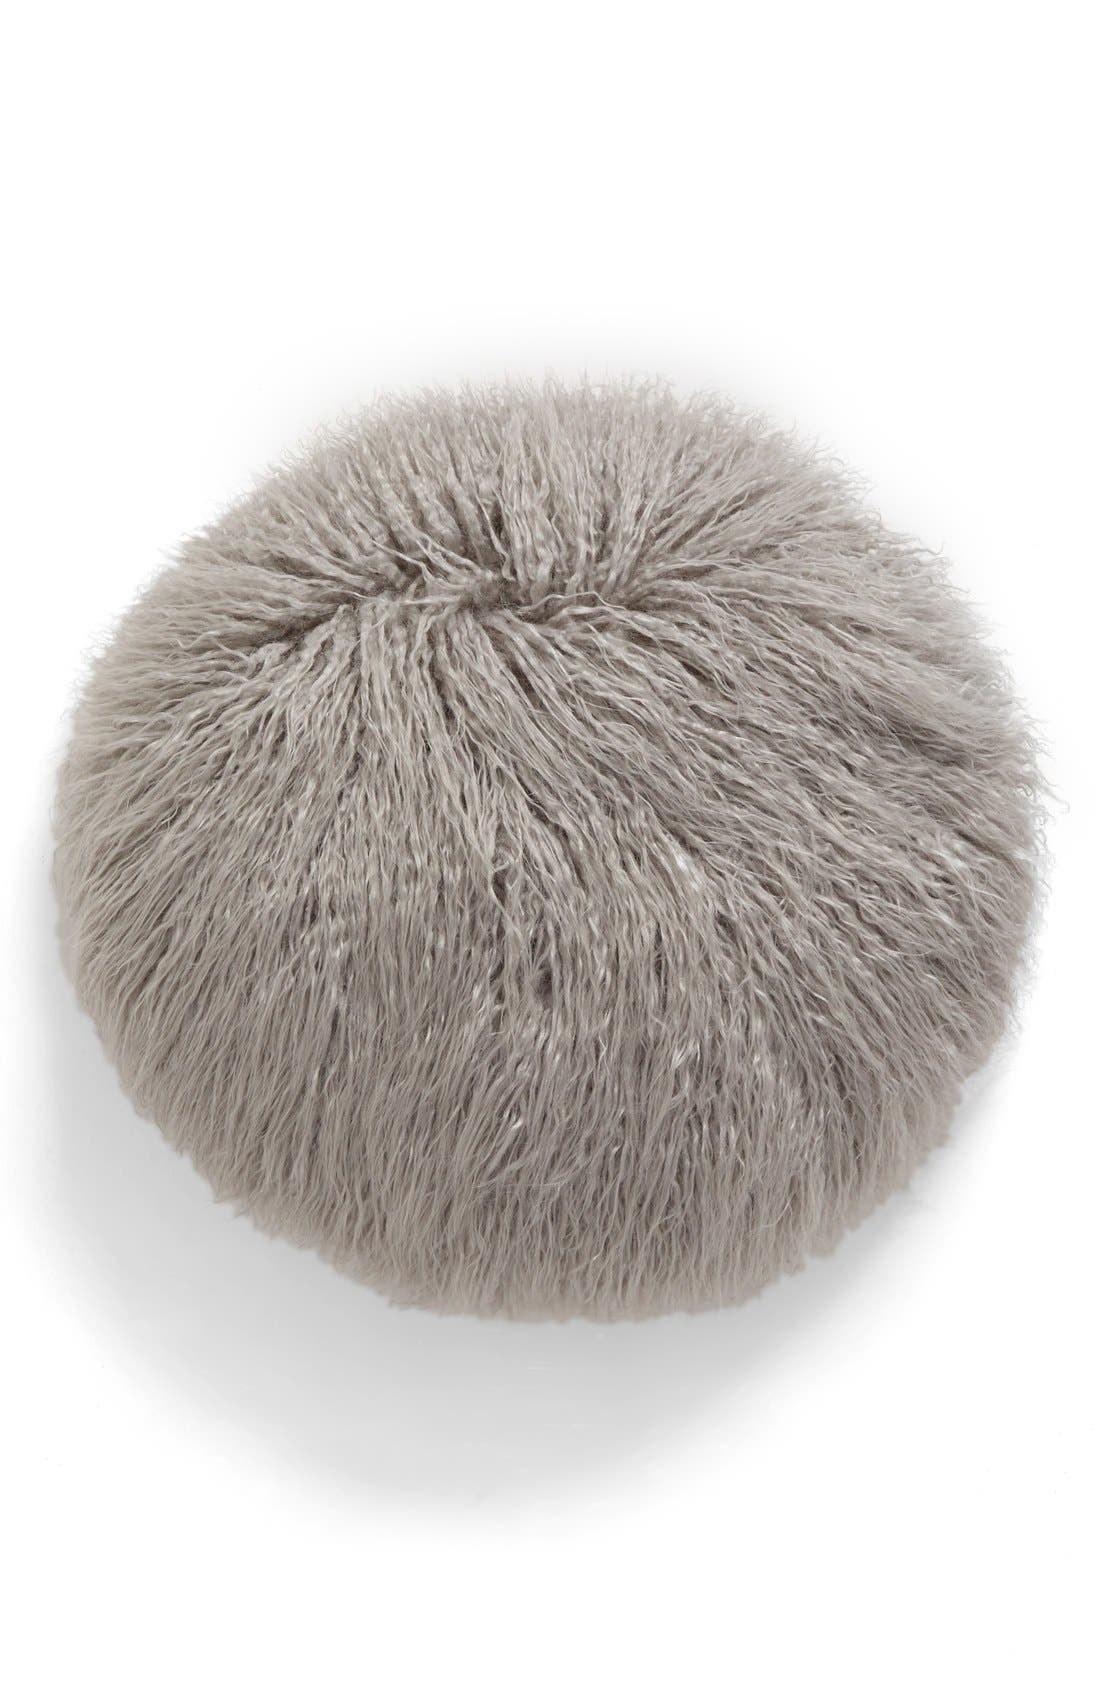 Faux Fur Accent Pillow,                             Main thumbnail 1, color,                             020